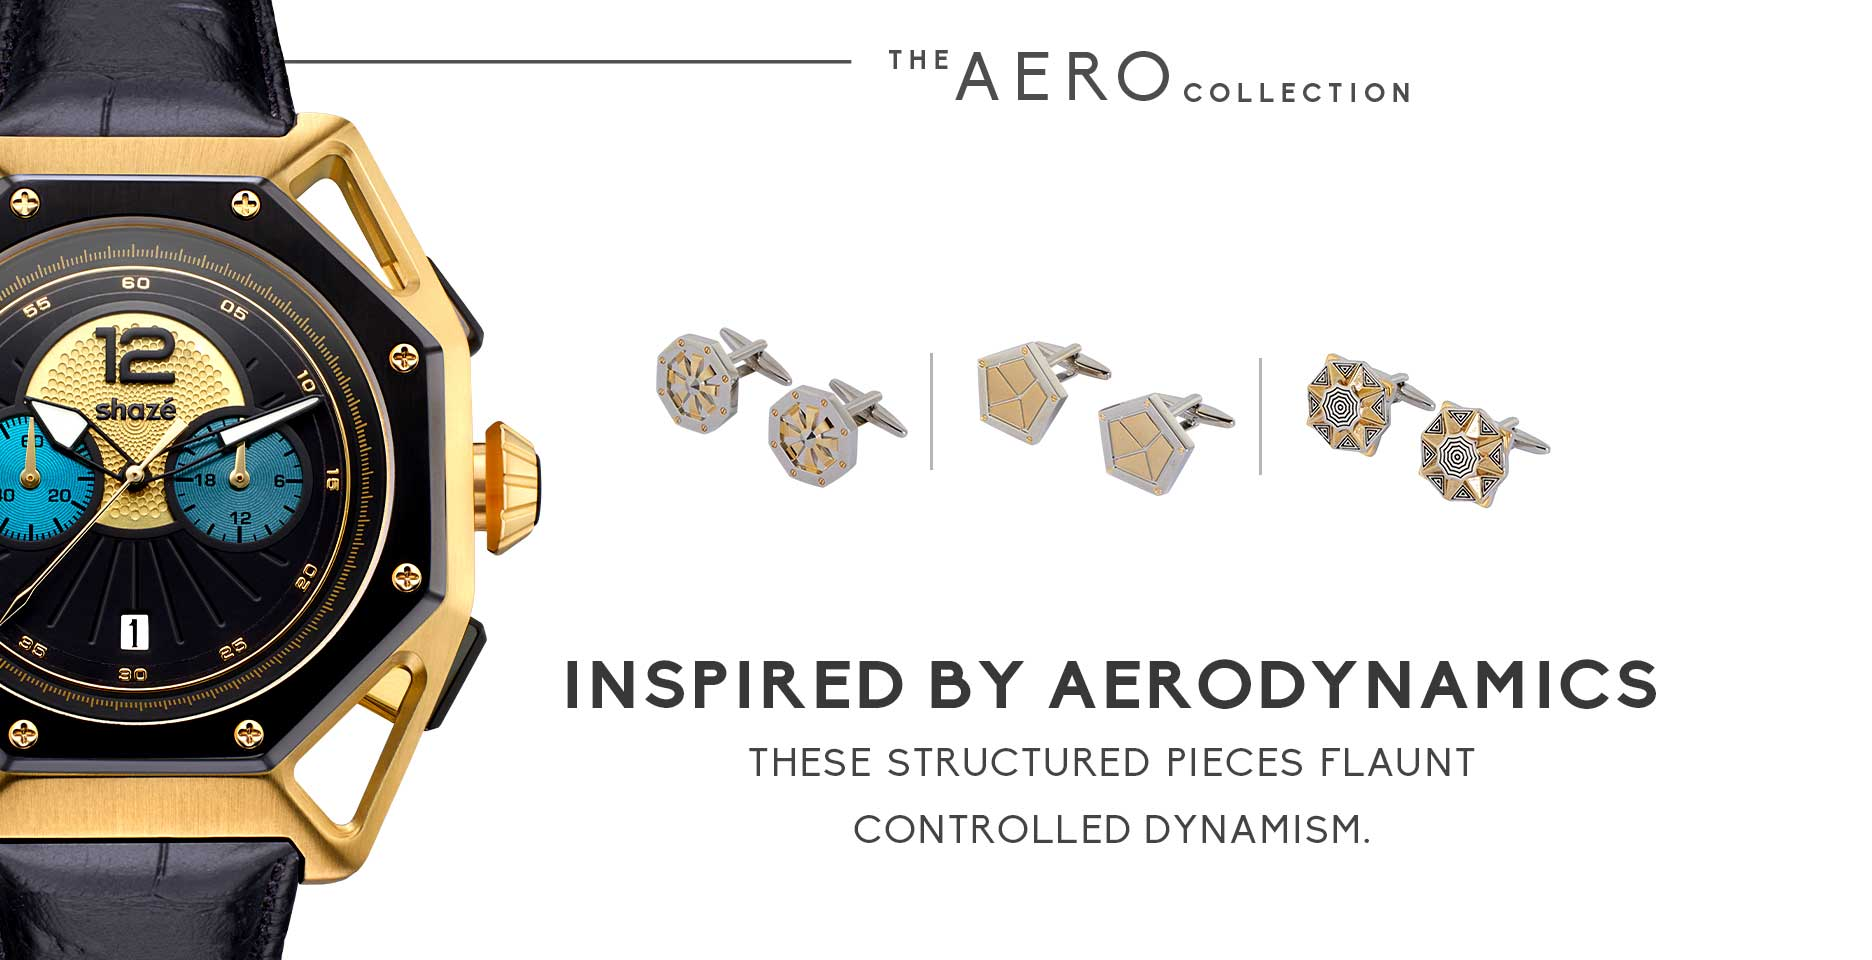 Aero Collection